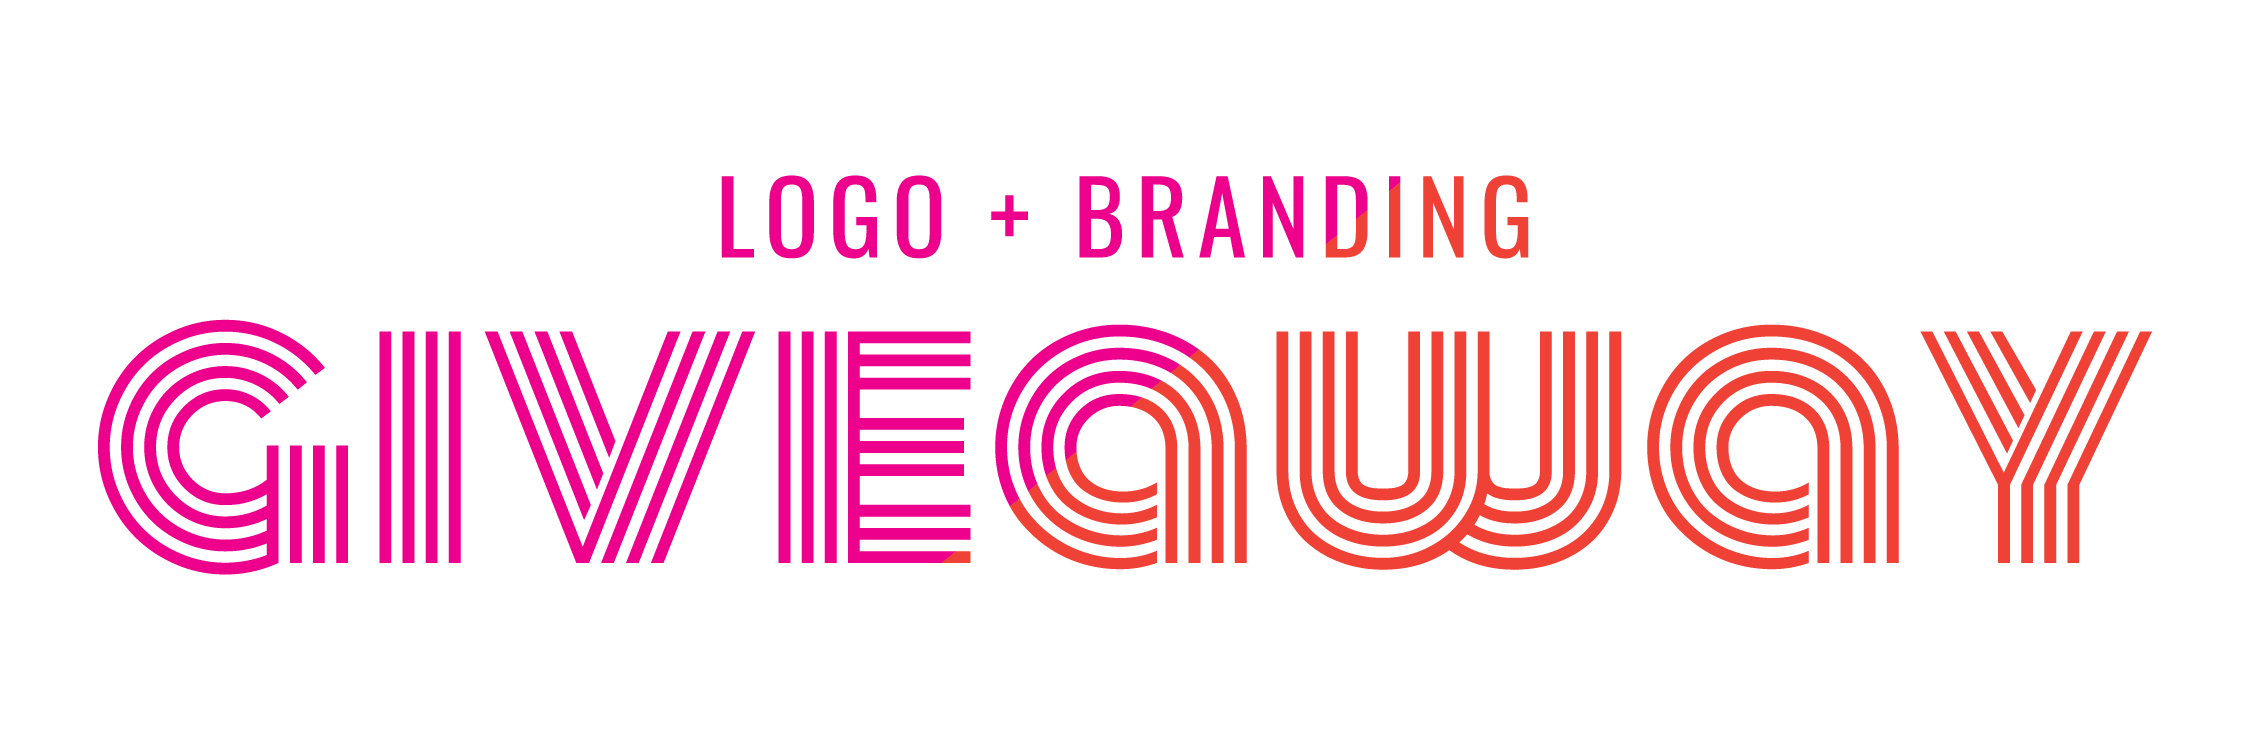 logo giveaway title-01.png